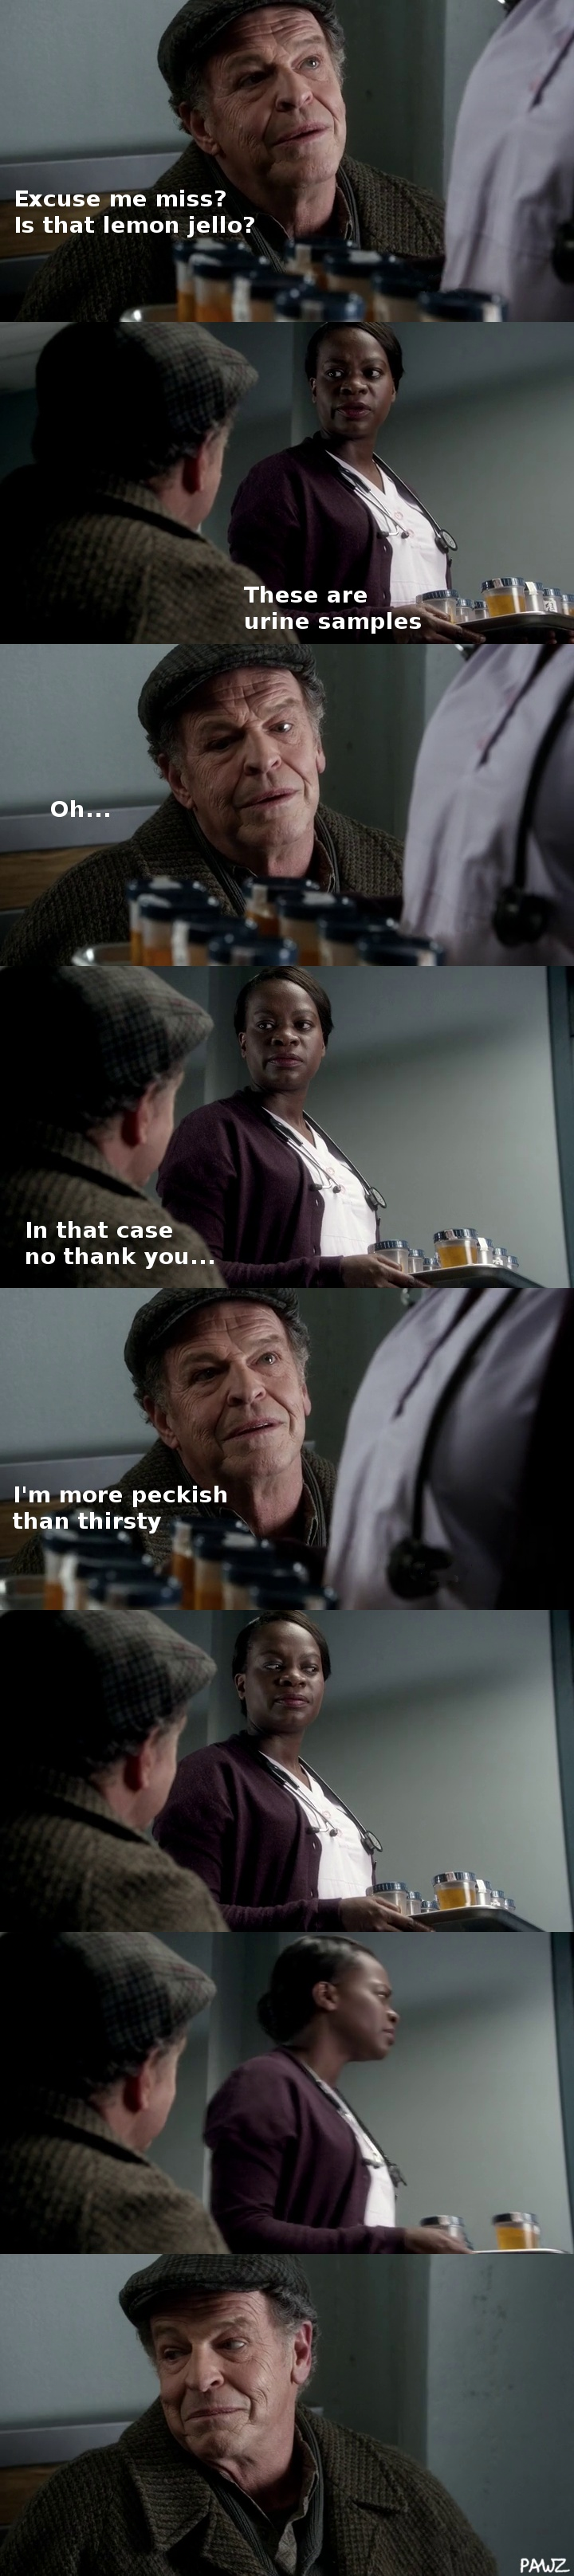 Another 'Walter-ism' I made after re-capping on last season. Walter Bishop in Fringe.